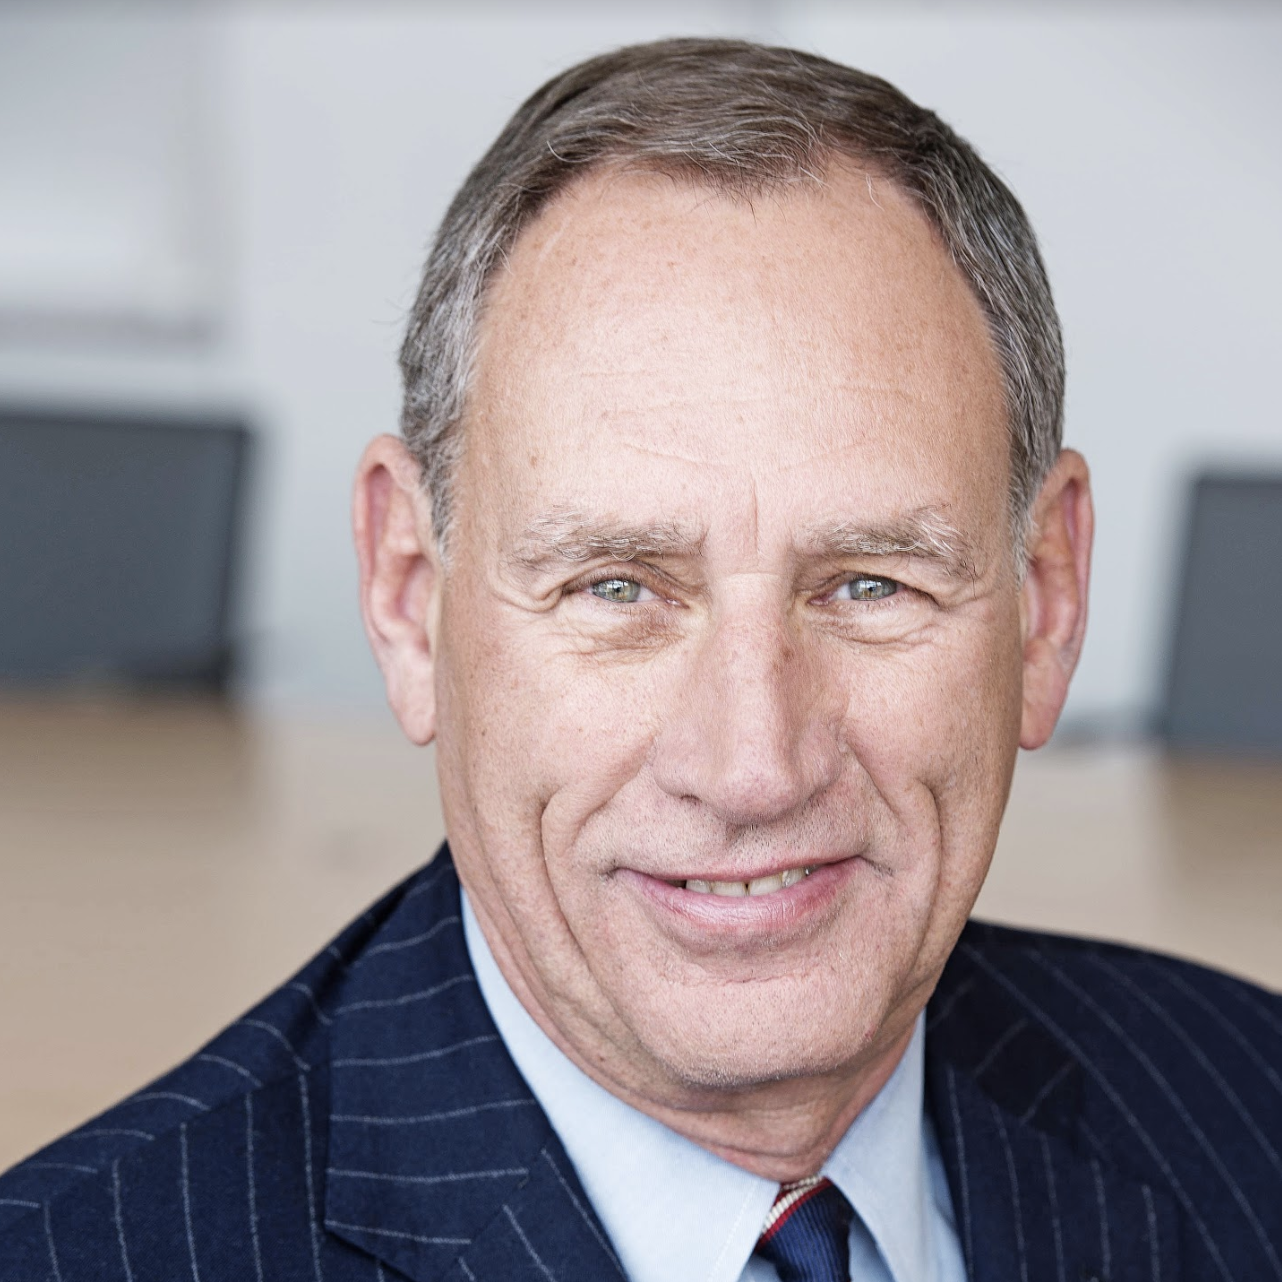 Toby Cosgrove on A Second Opinion Healthcare Podcast